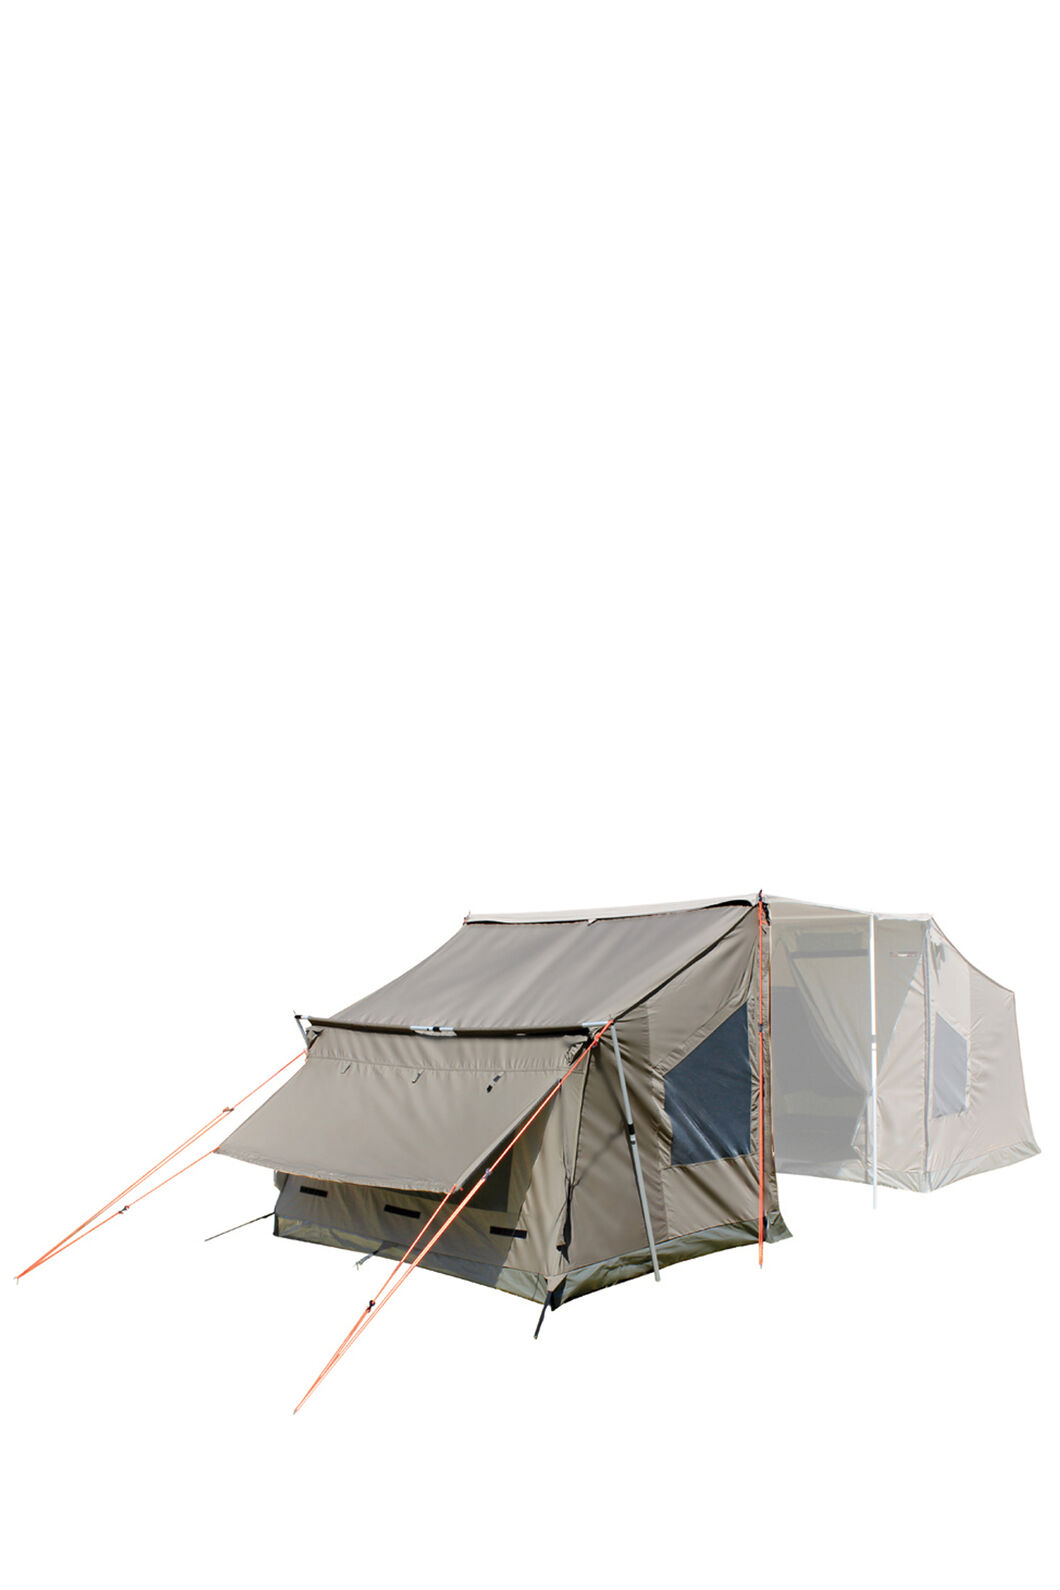 Oztent RV3-4 Tag Along Touring Tent, None, hi-res